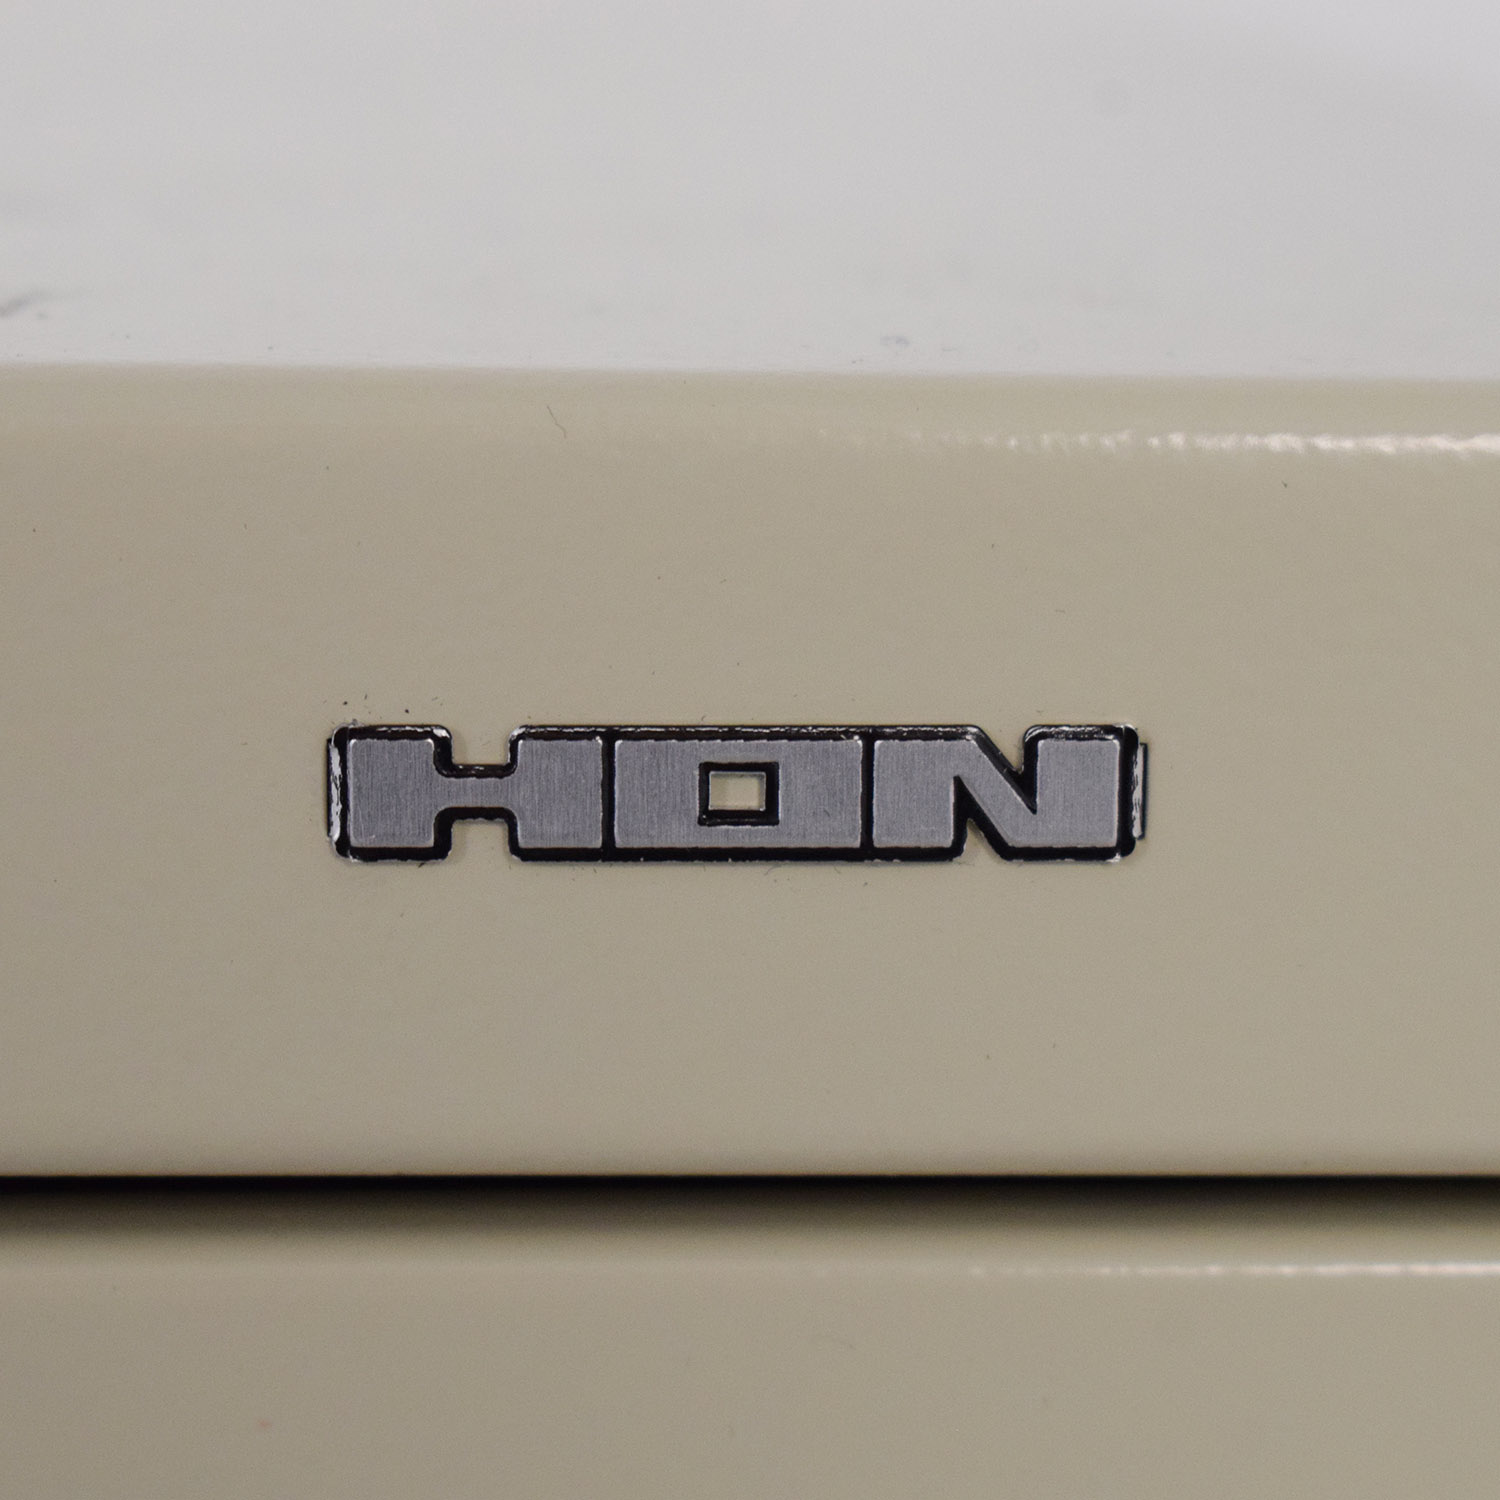 Hon Hon Four Drawer File Cabinet on sale